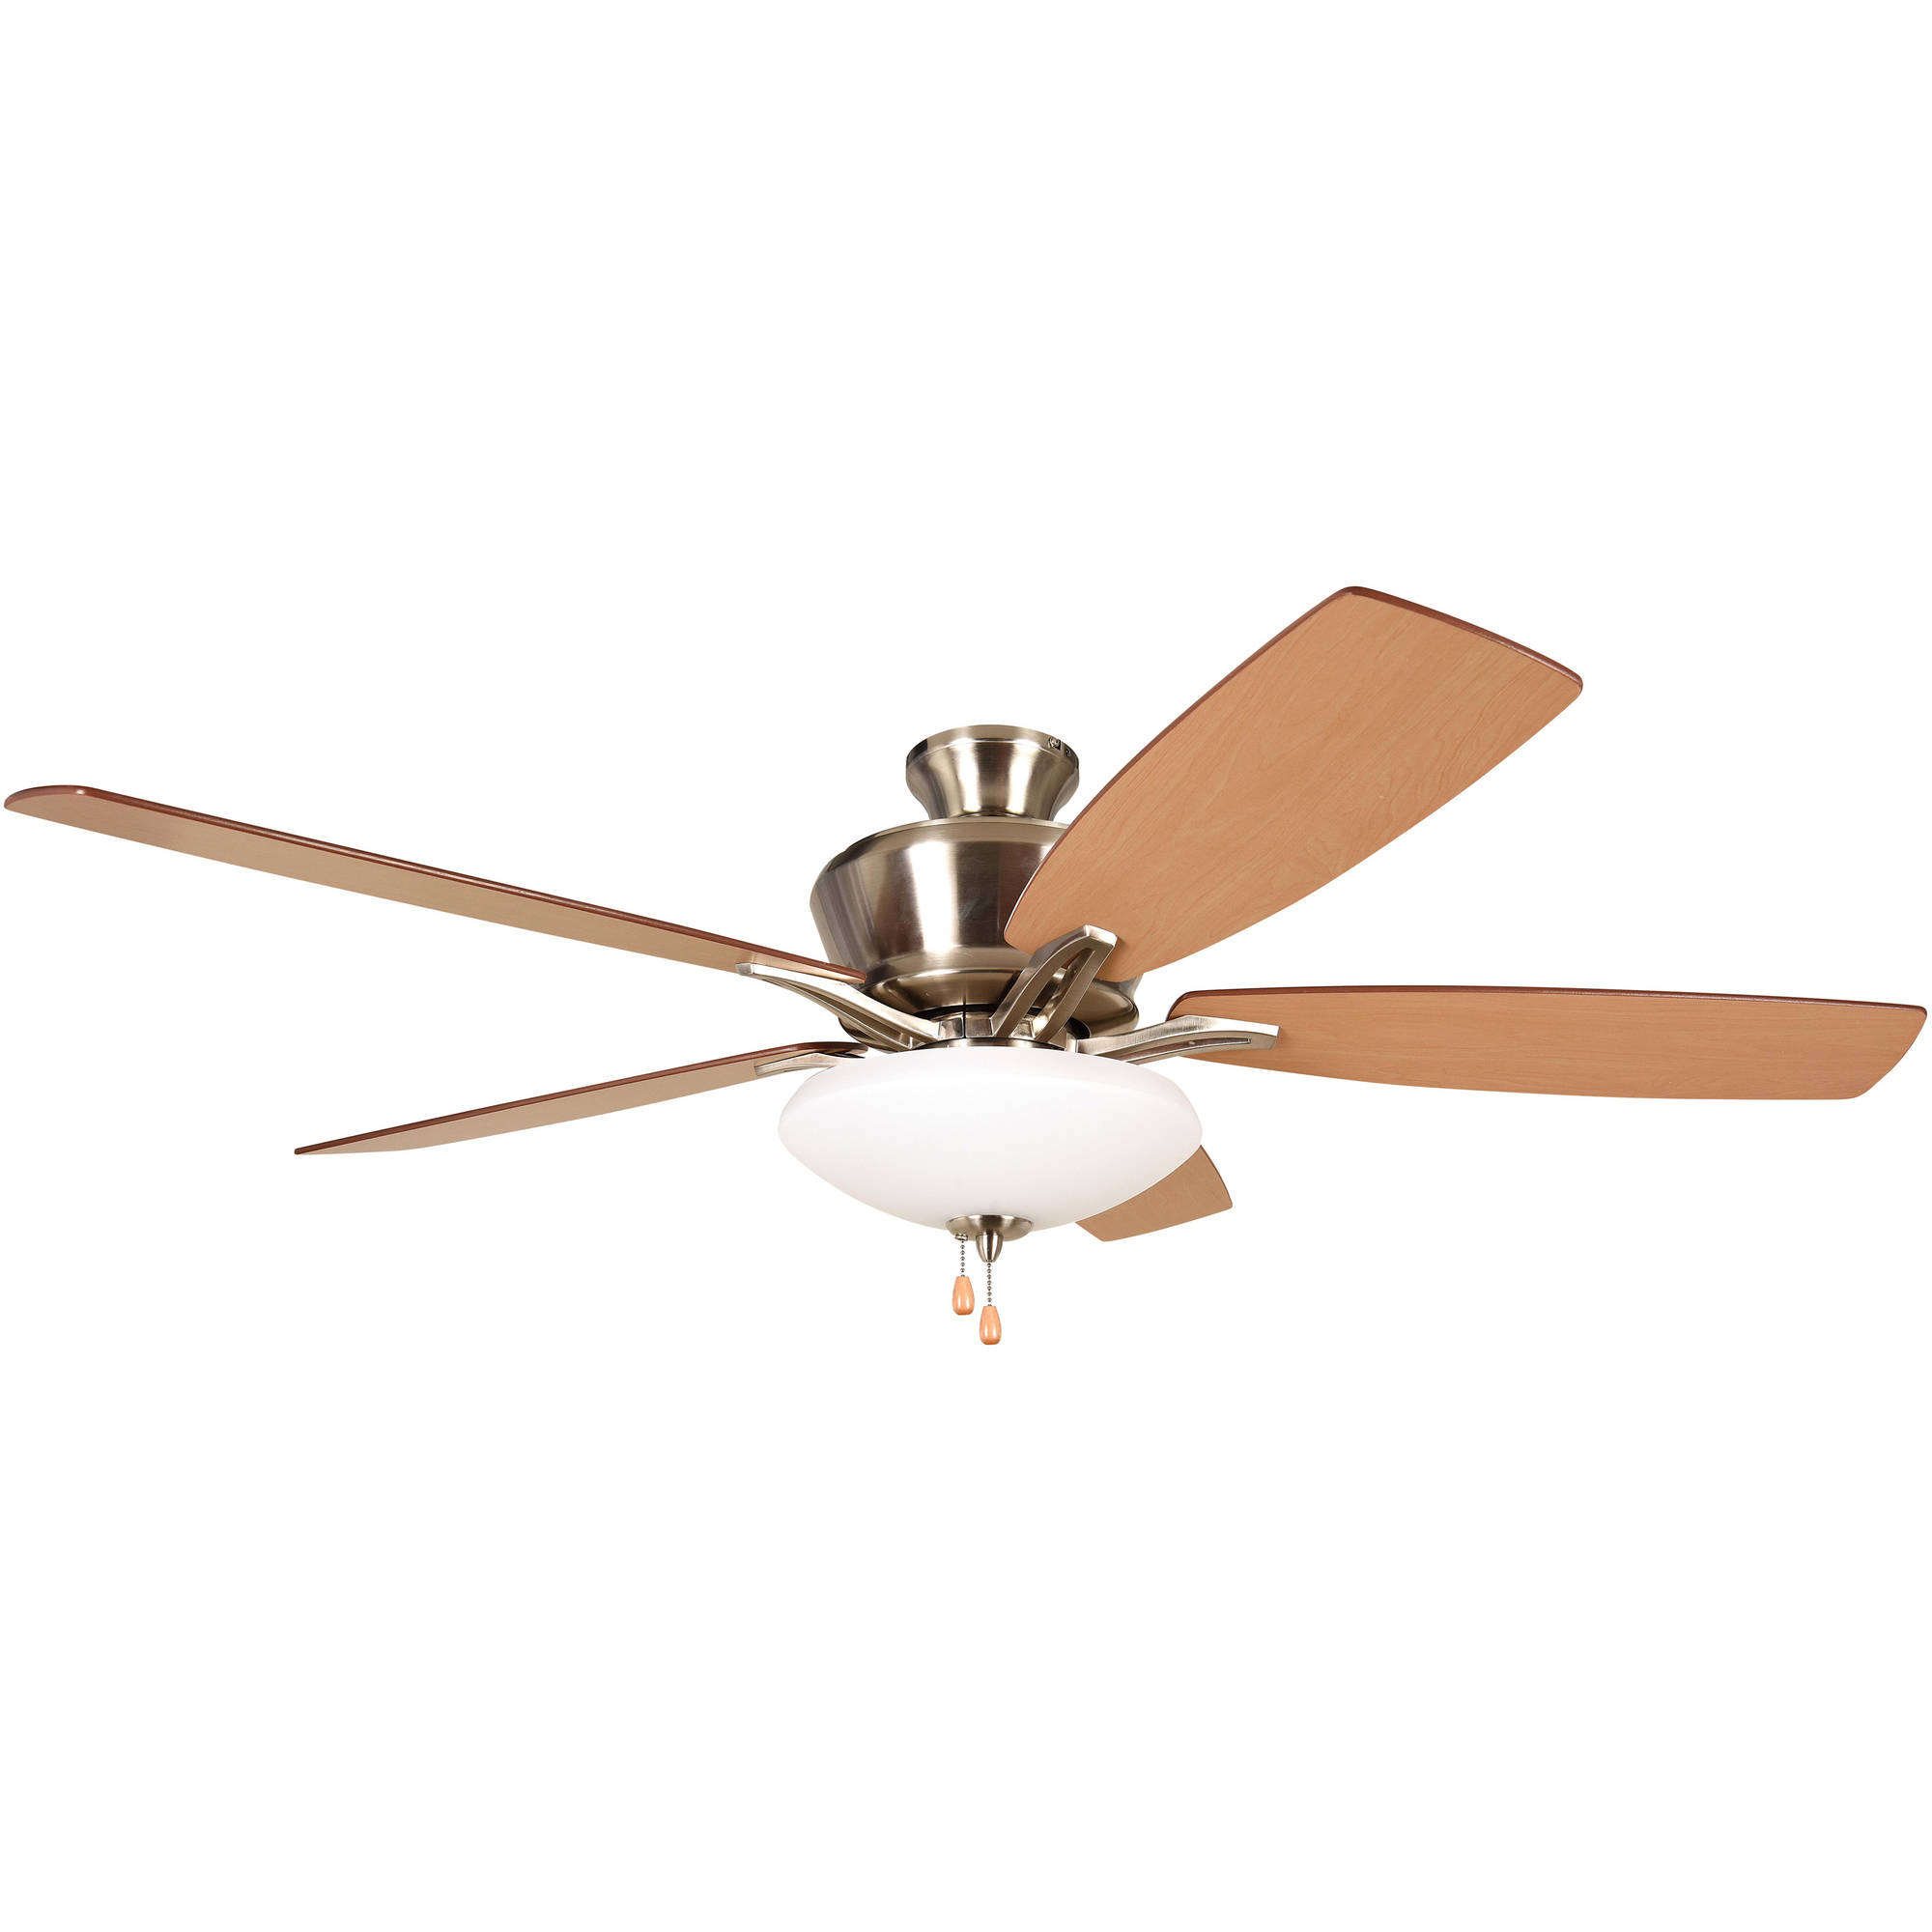 "Litex Industries Kala 52"" Dual Mount Ceiling Fan Brushed Nickel"